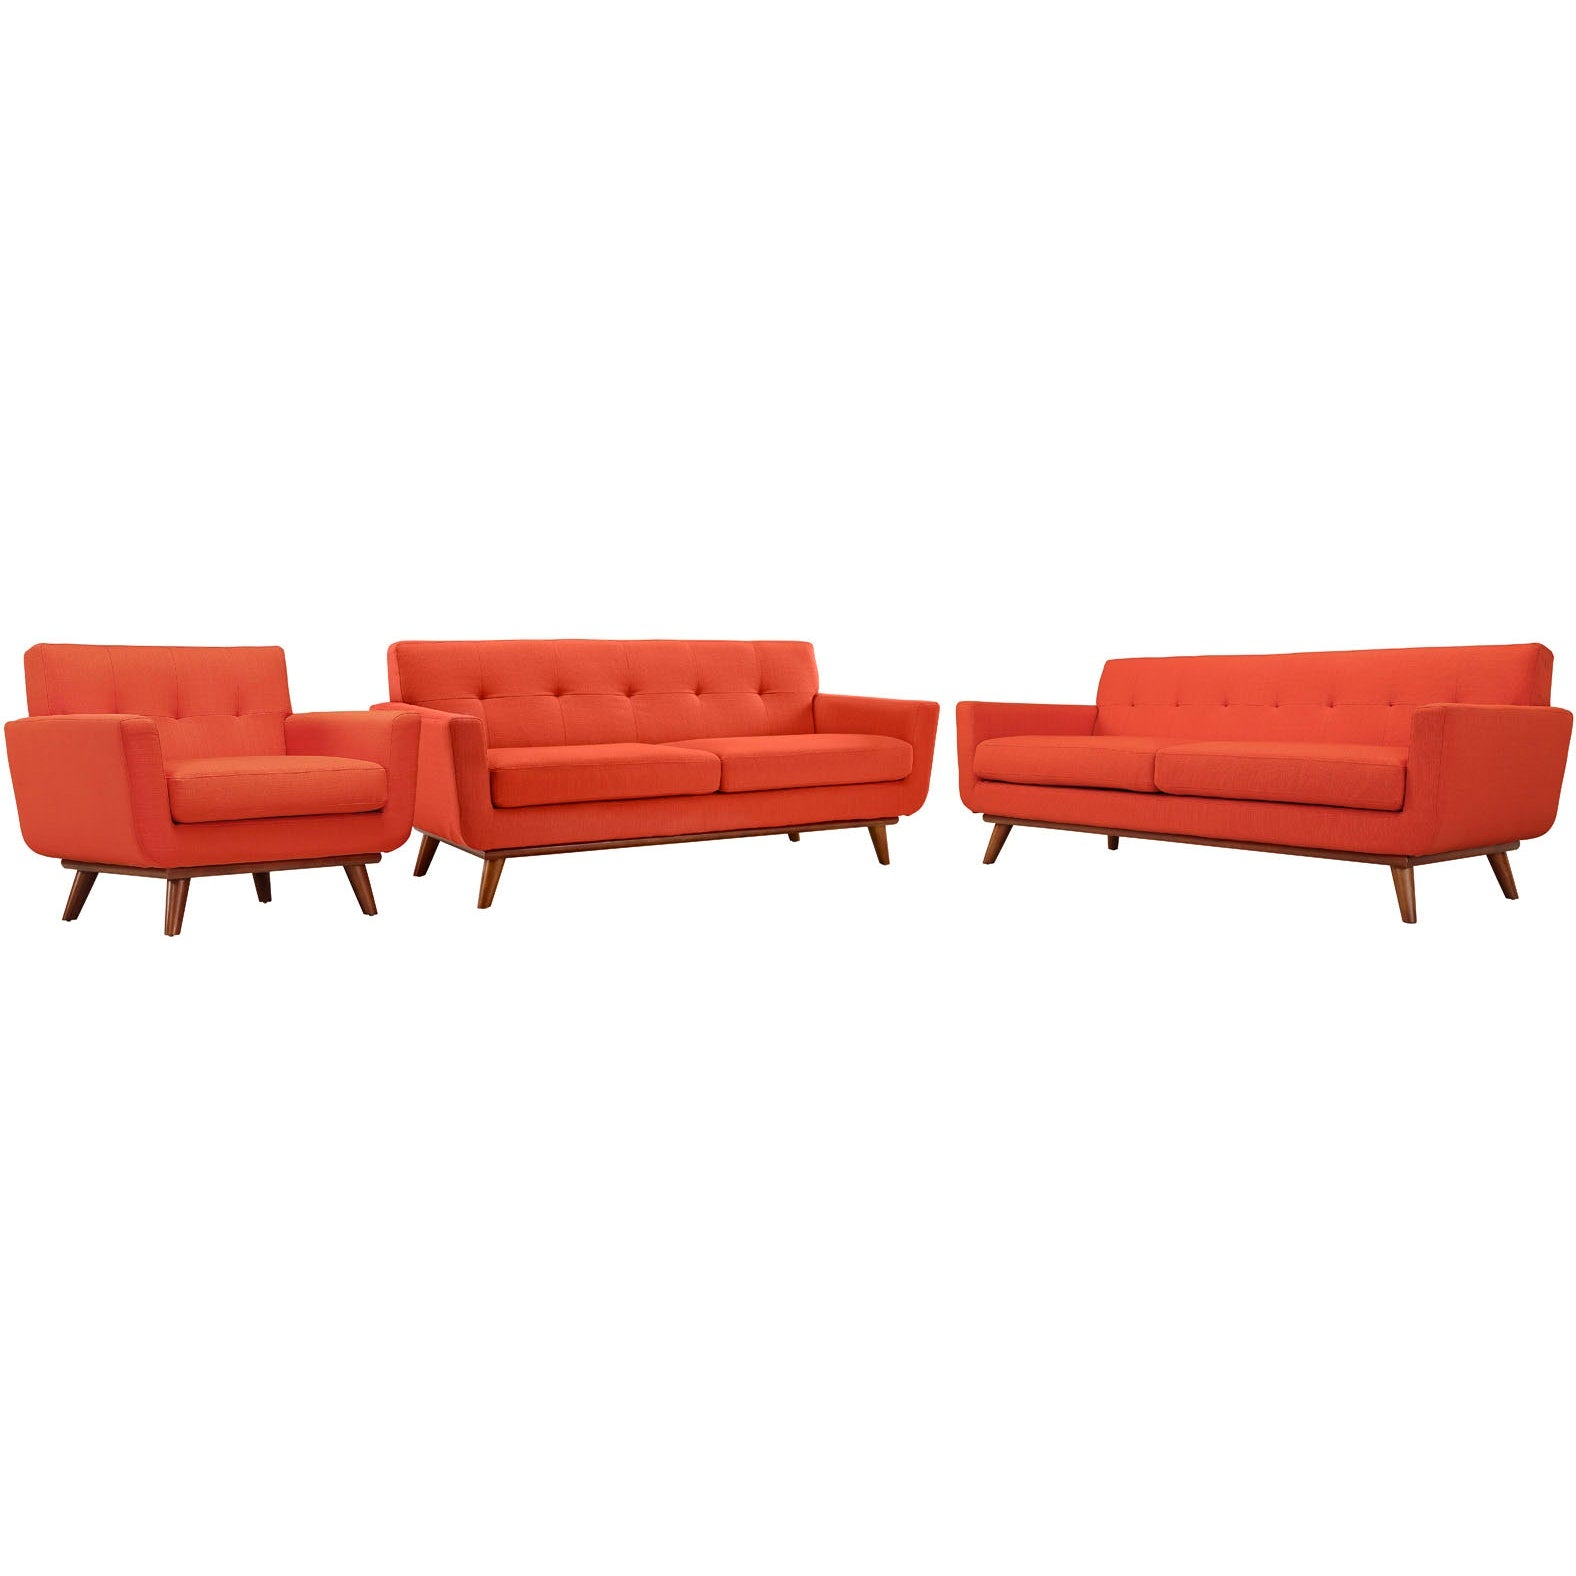 Engage Sofa Loveseat and Armchair Set of 3 - Atomic Red